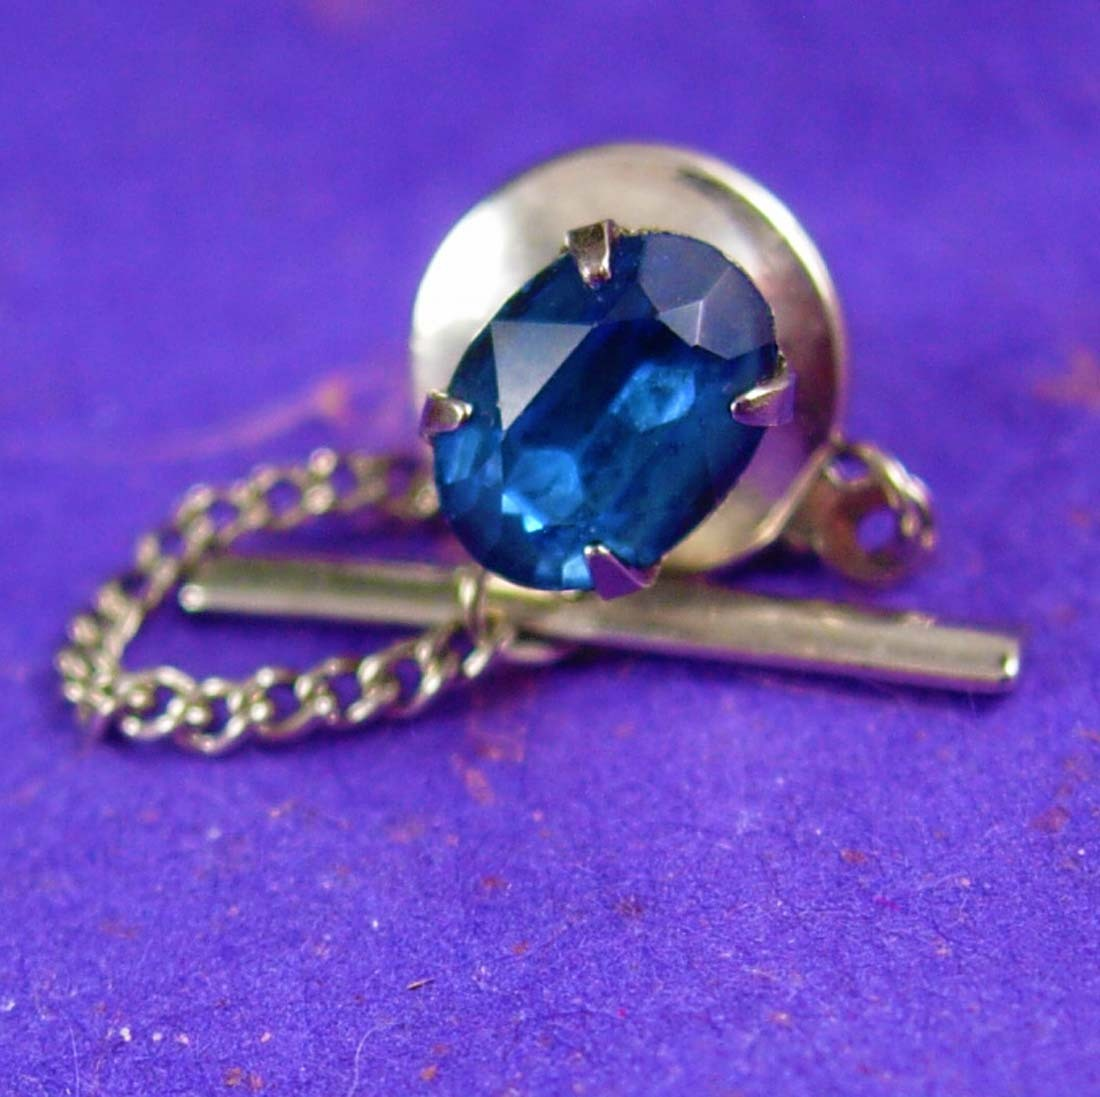 Primary image for Birthstone Tie Tack Vintage Blue Topaz Multi faceted Jewel December Birthday Wed